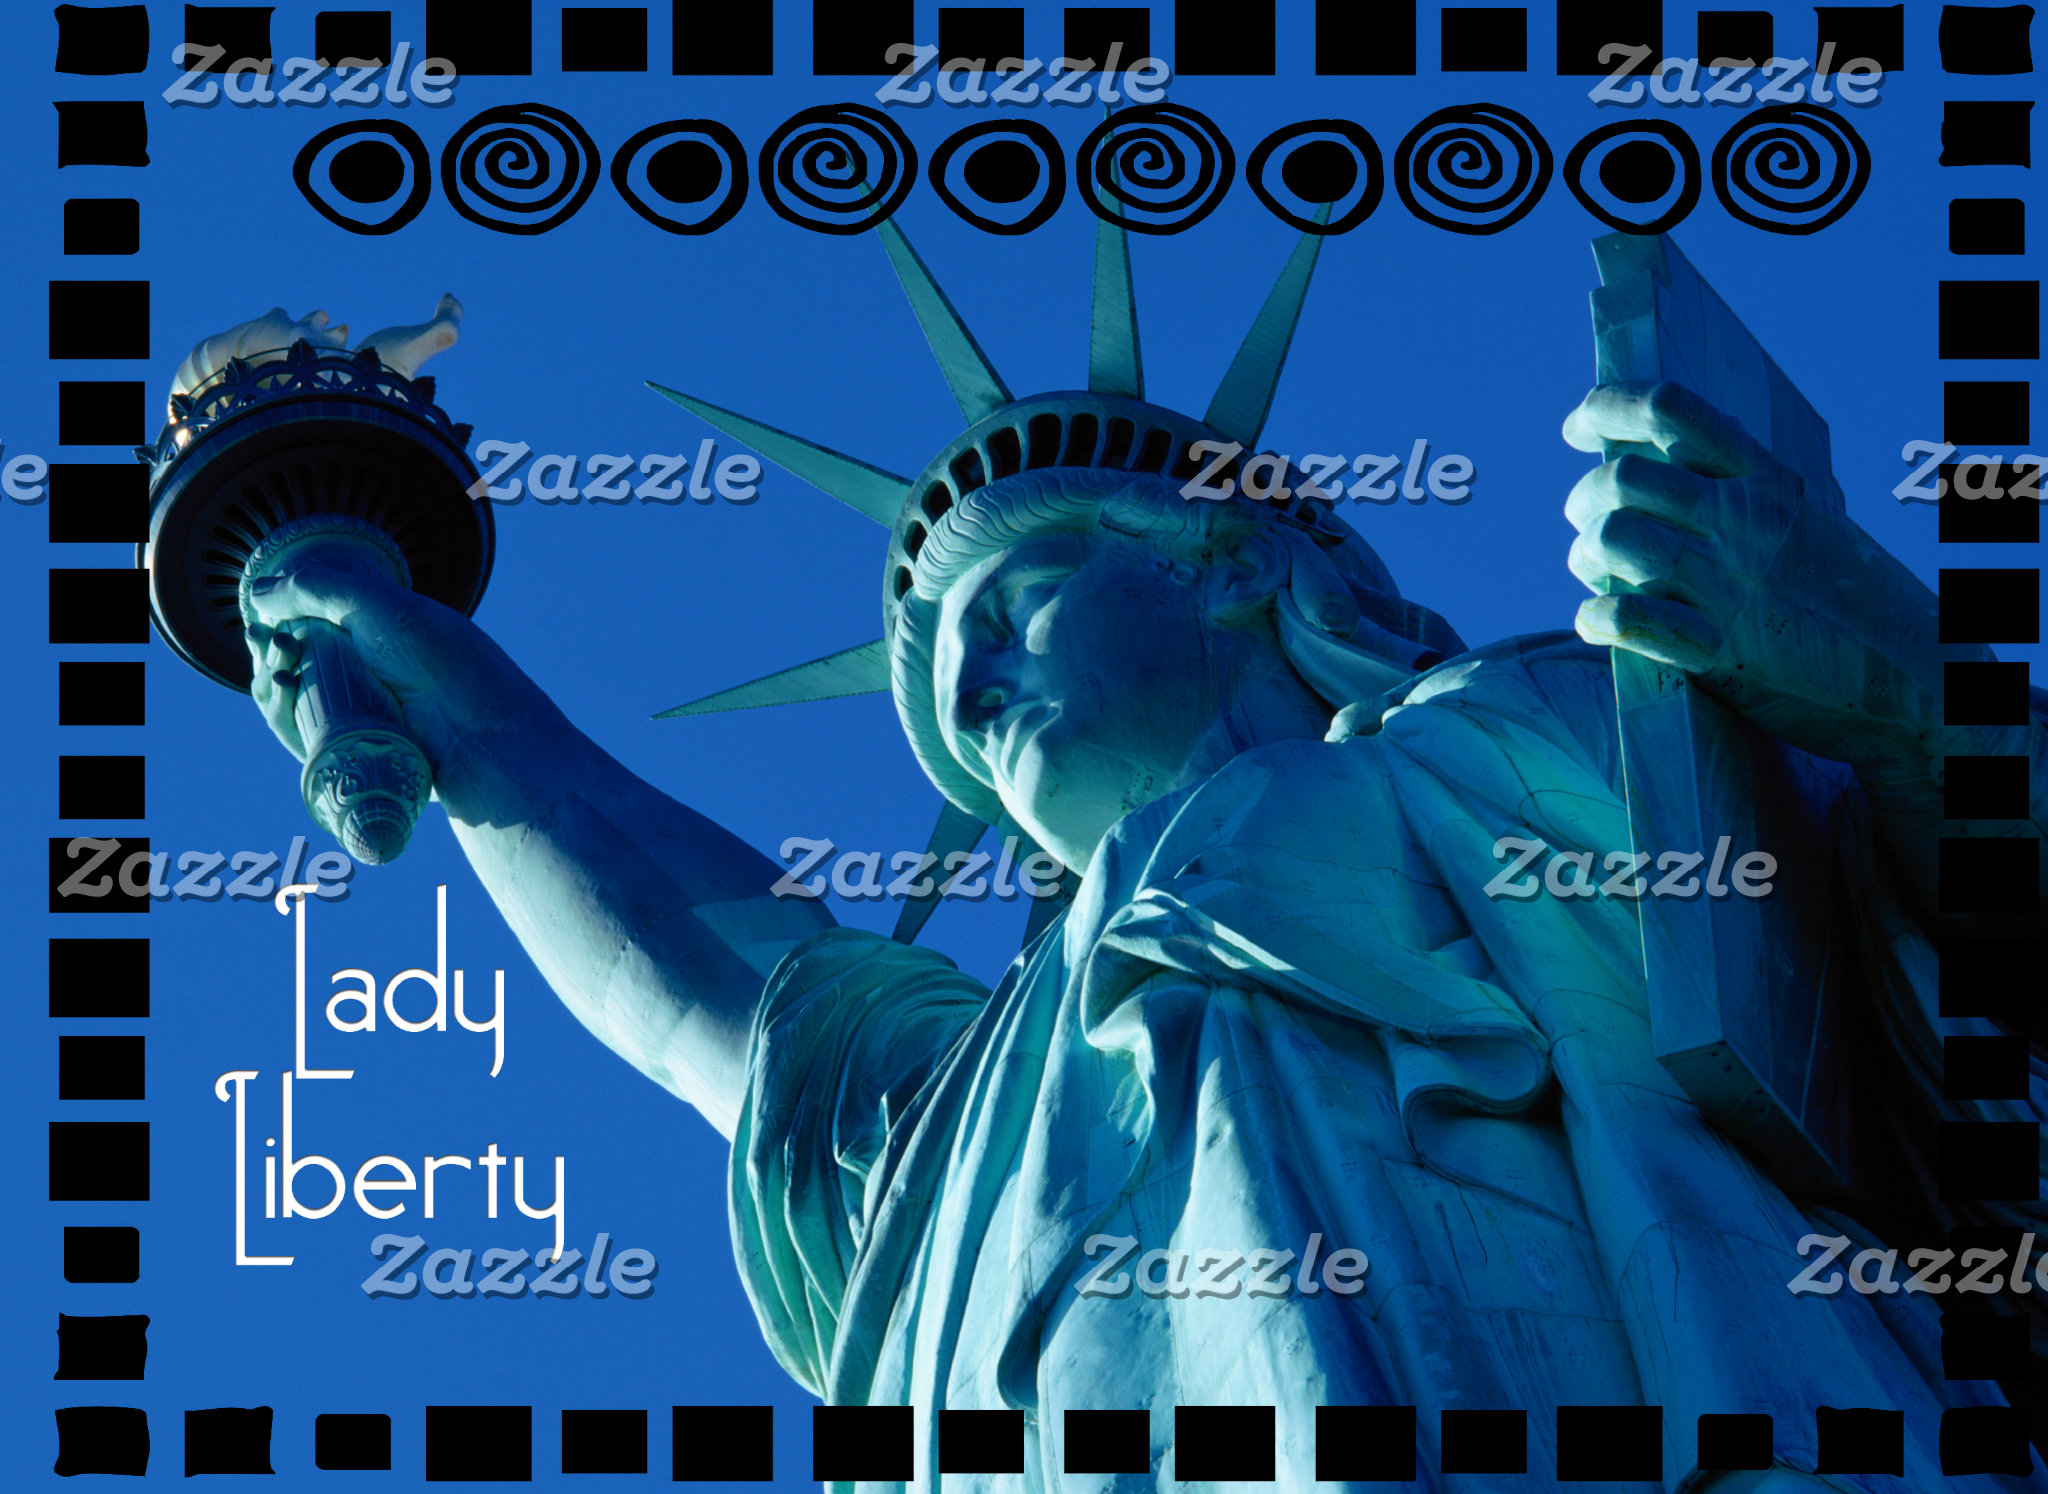 LADY LIBERTY - STATUE OF LIBERTY